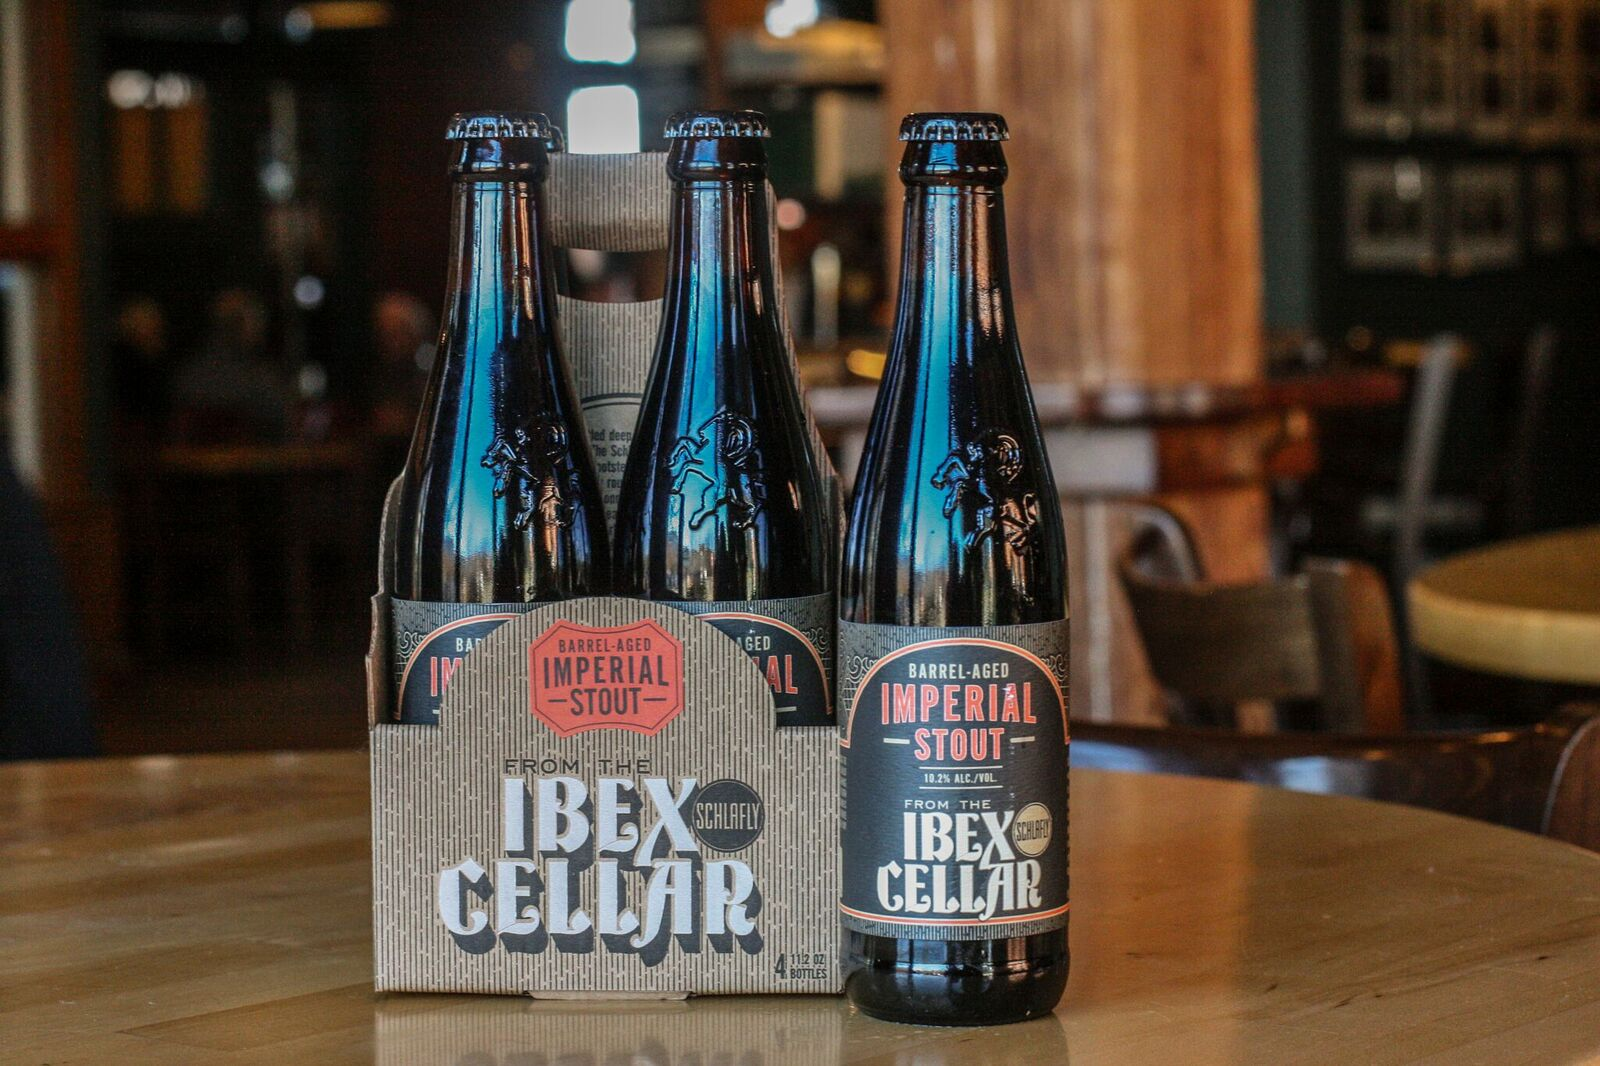 LOUIS Schlafly Beer Introduces Today A New Premium Series For 2017 From The Ibex Cellar Collection Over Year And Half In Making